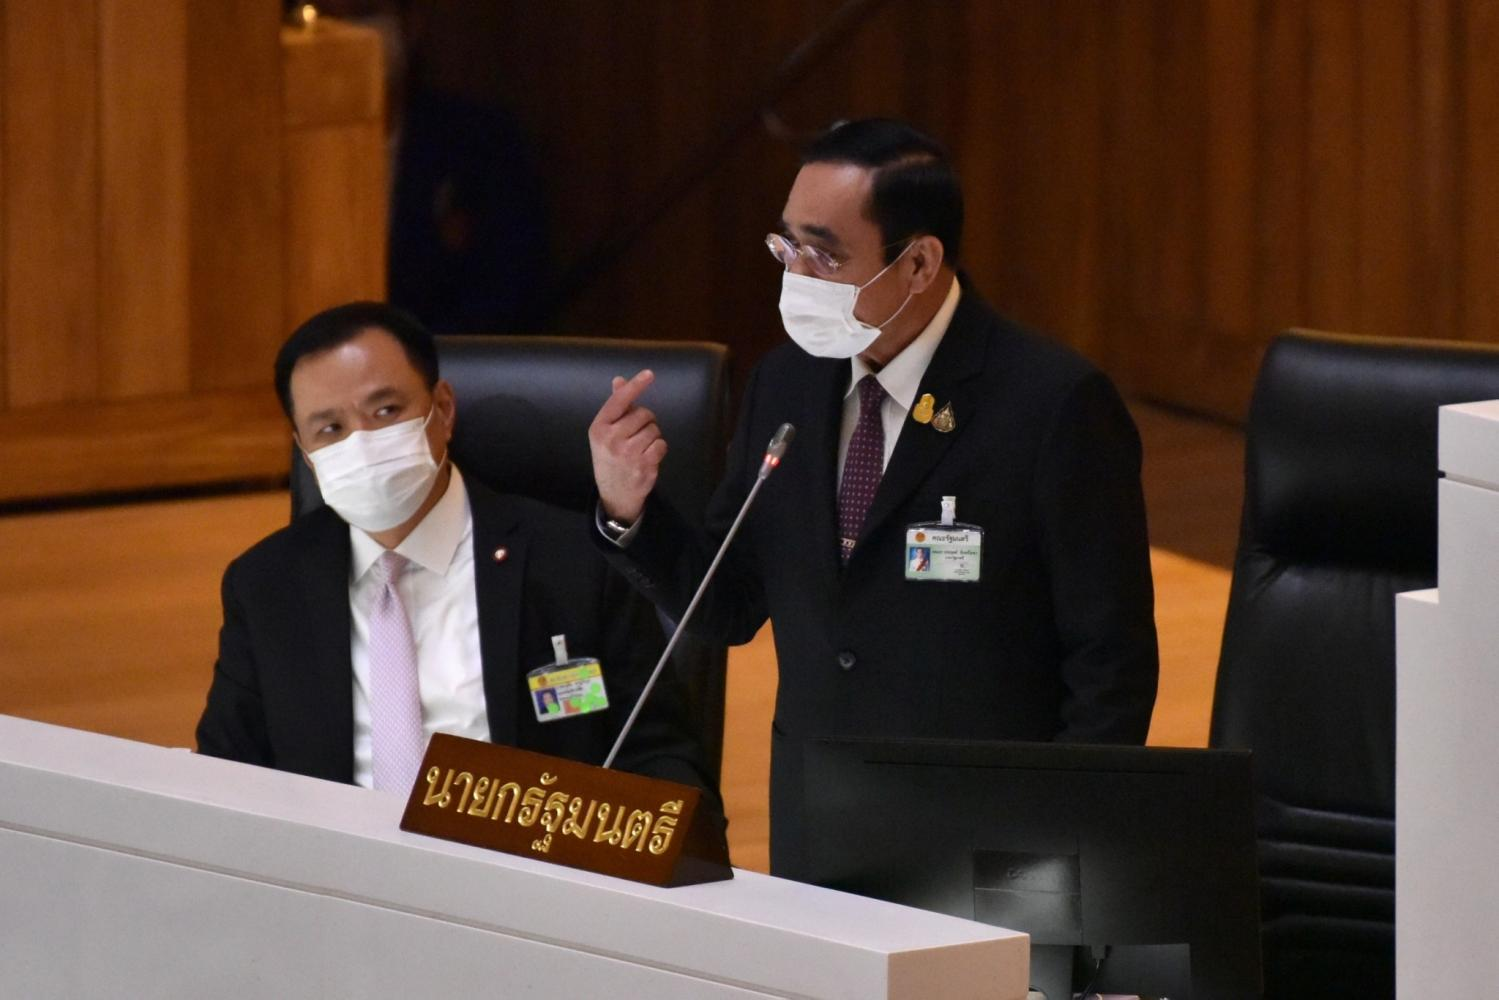 PM Prayut Chan-o-cha makes a point during his rebuttal of the censure debate allegations against him in parliament. The four-day no-confidence debate began on Tuesday targeting Gen Prayut and five other cabinet members including Deputy Prime Minister and Public Health Minister Anutin Charnvirakul (left).(Parliament photo)